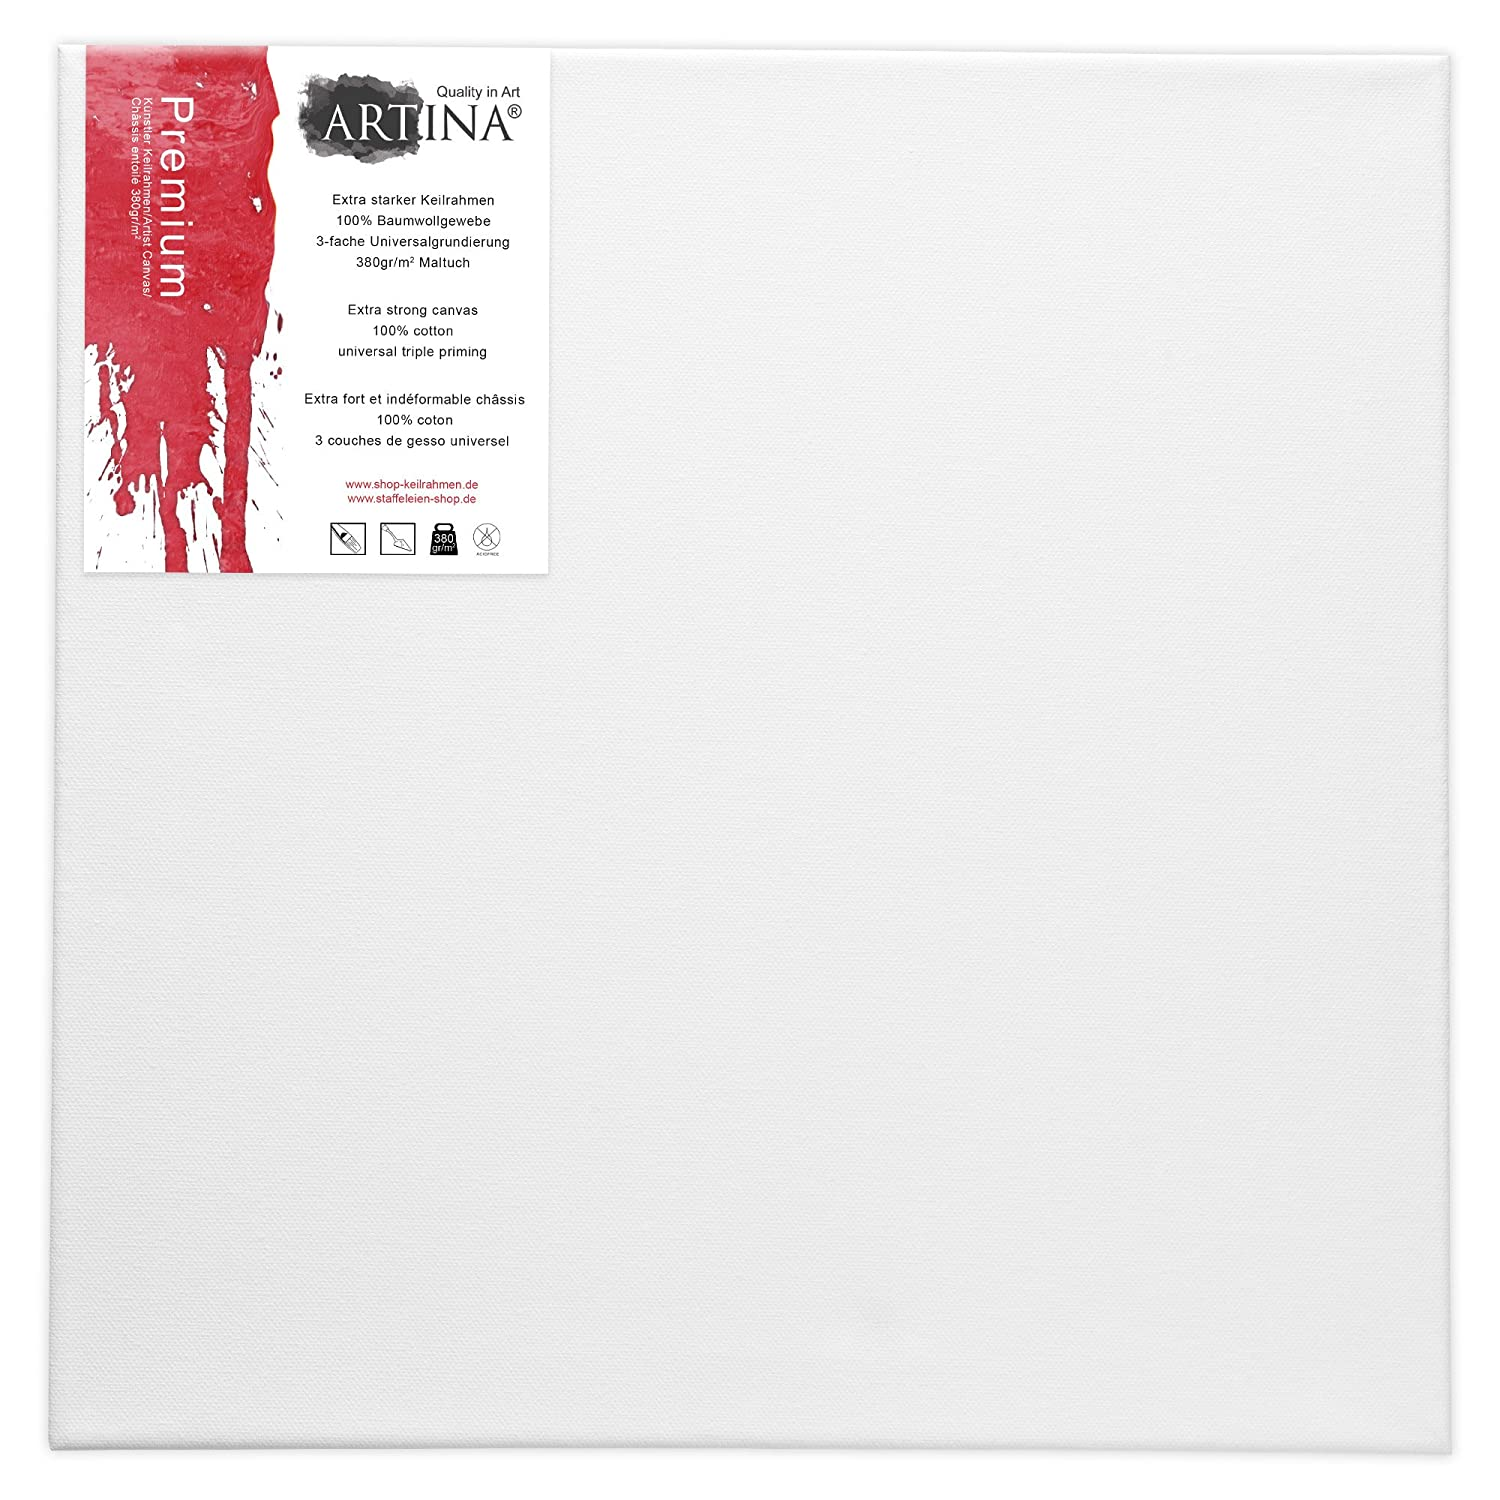 4 PREMIUM DEEP EDGE STRETCHED BLANK CANVASES 70 x 70 cm ~27x27 in canvas on stretcher bars